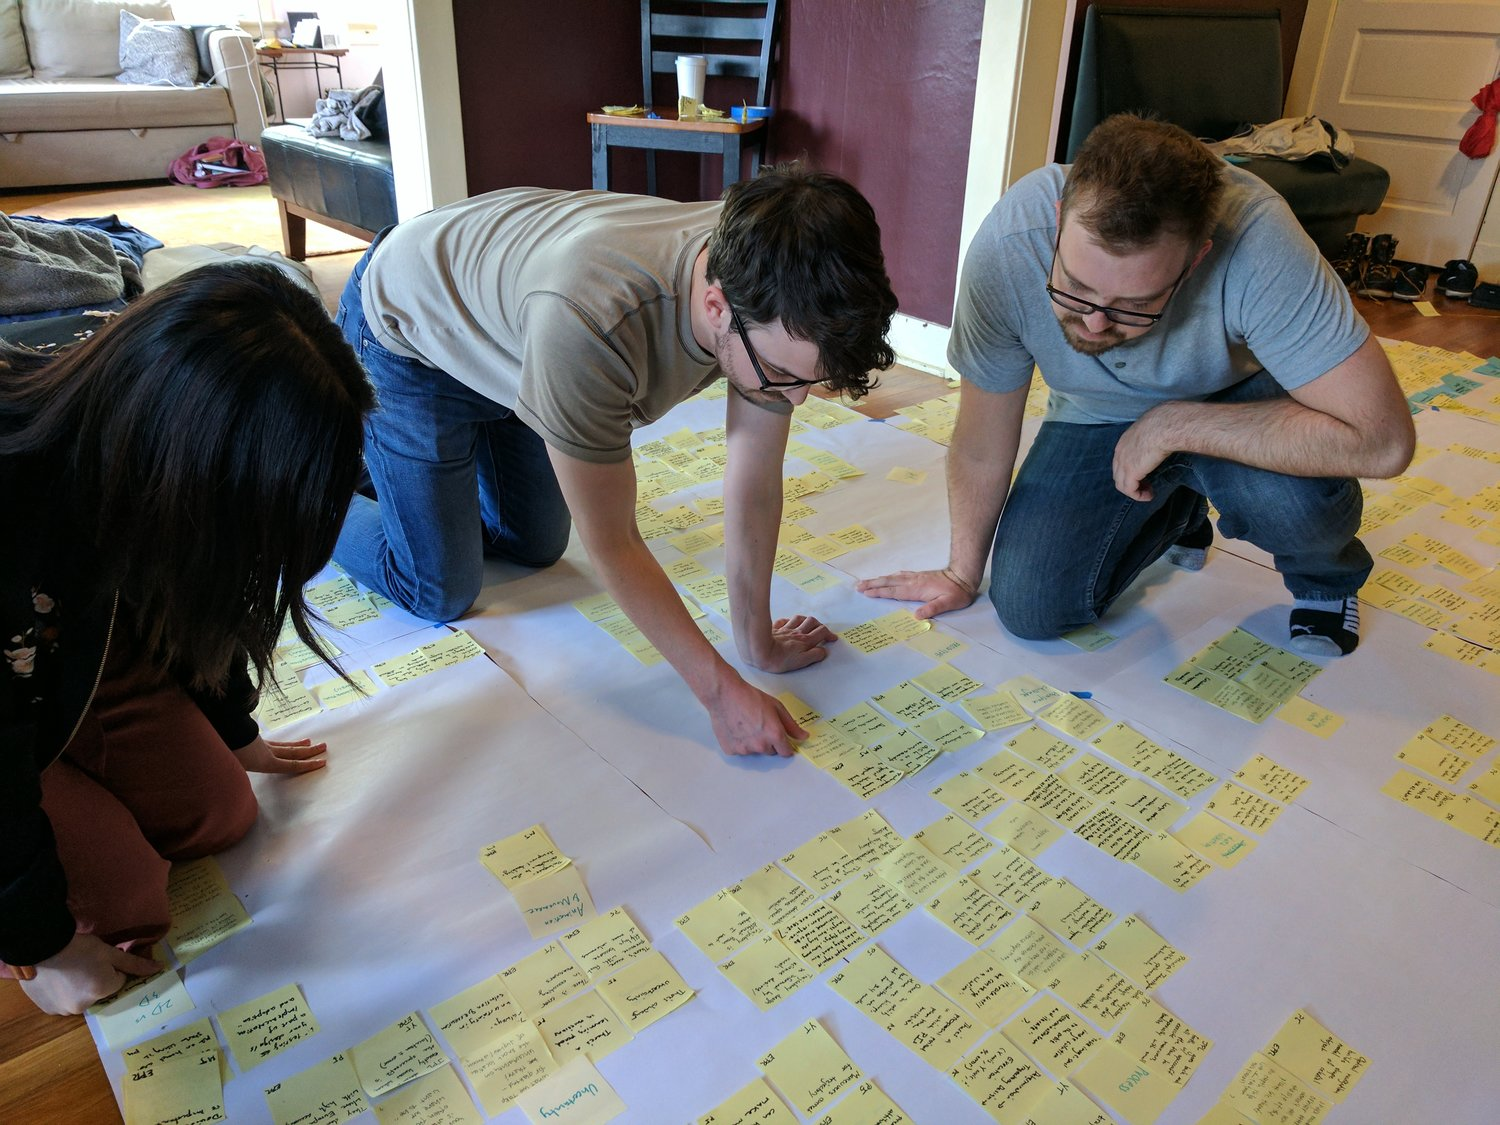 Phase 1 - offsite to start transcribing interviews and sort data.